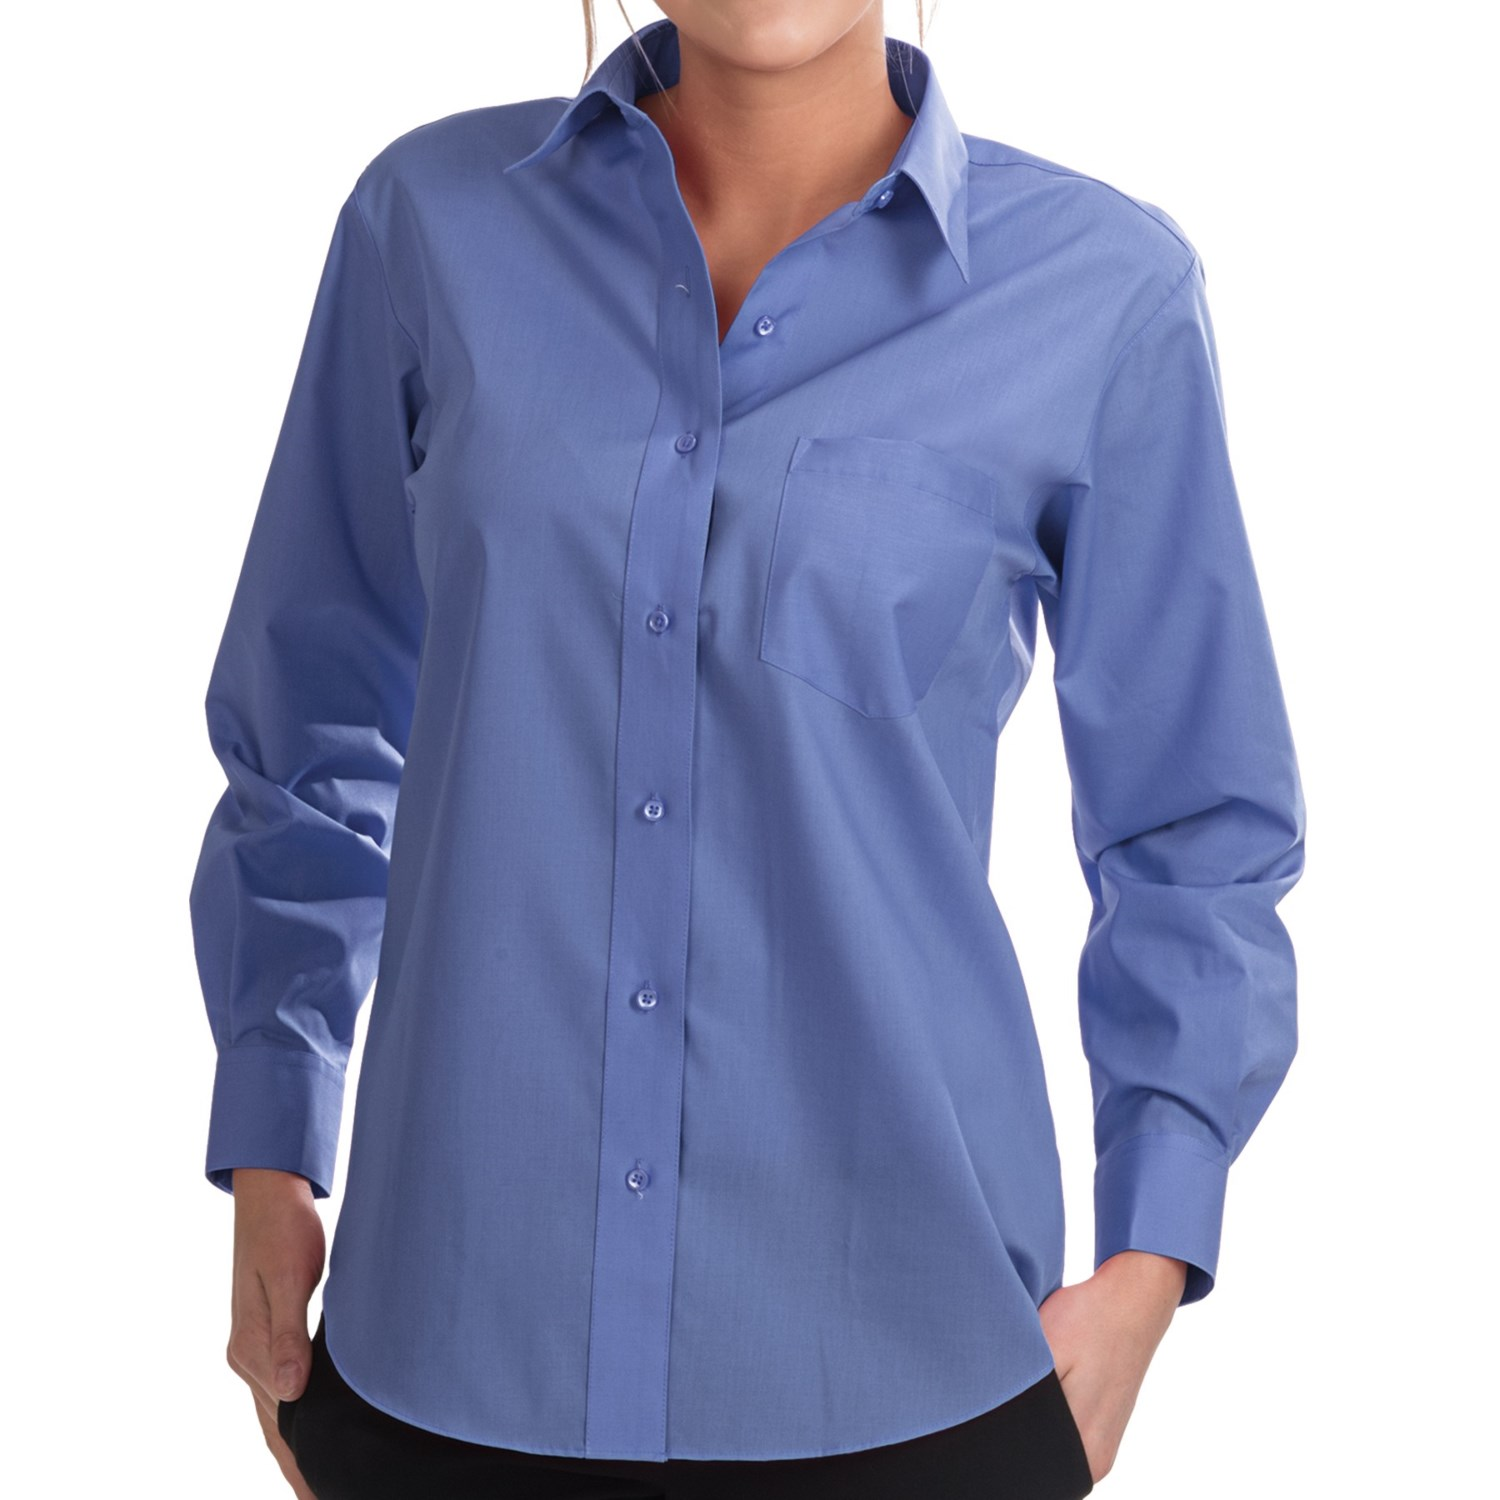 Foxcroft Wrinkle Free Essentials Shirt For Women 6630a: wrinkle free shirts for women